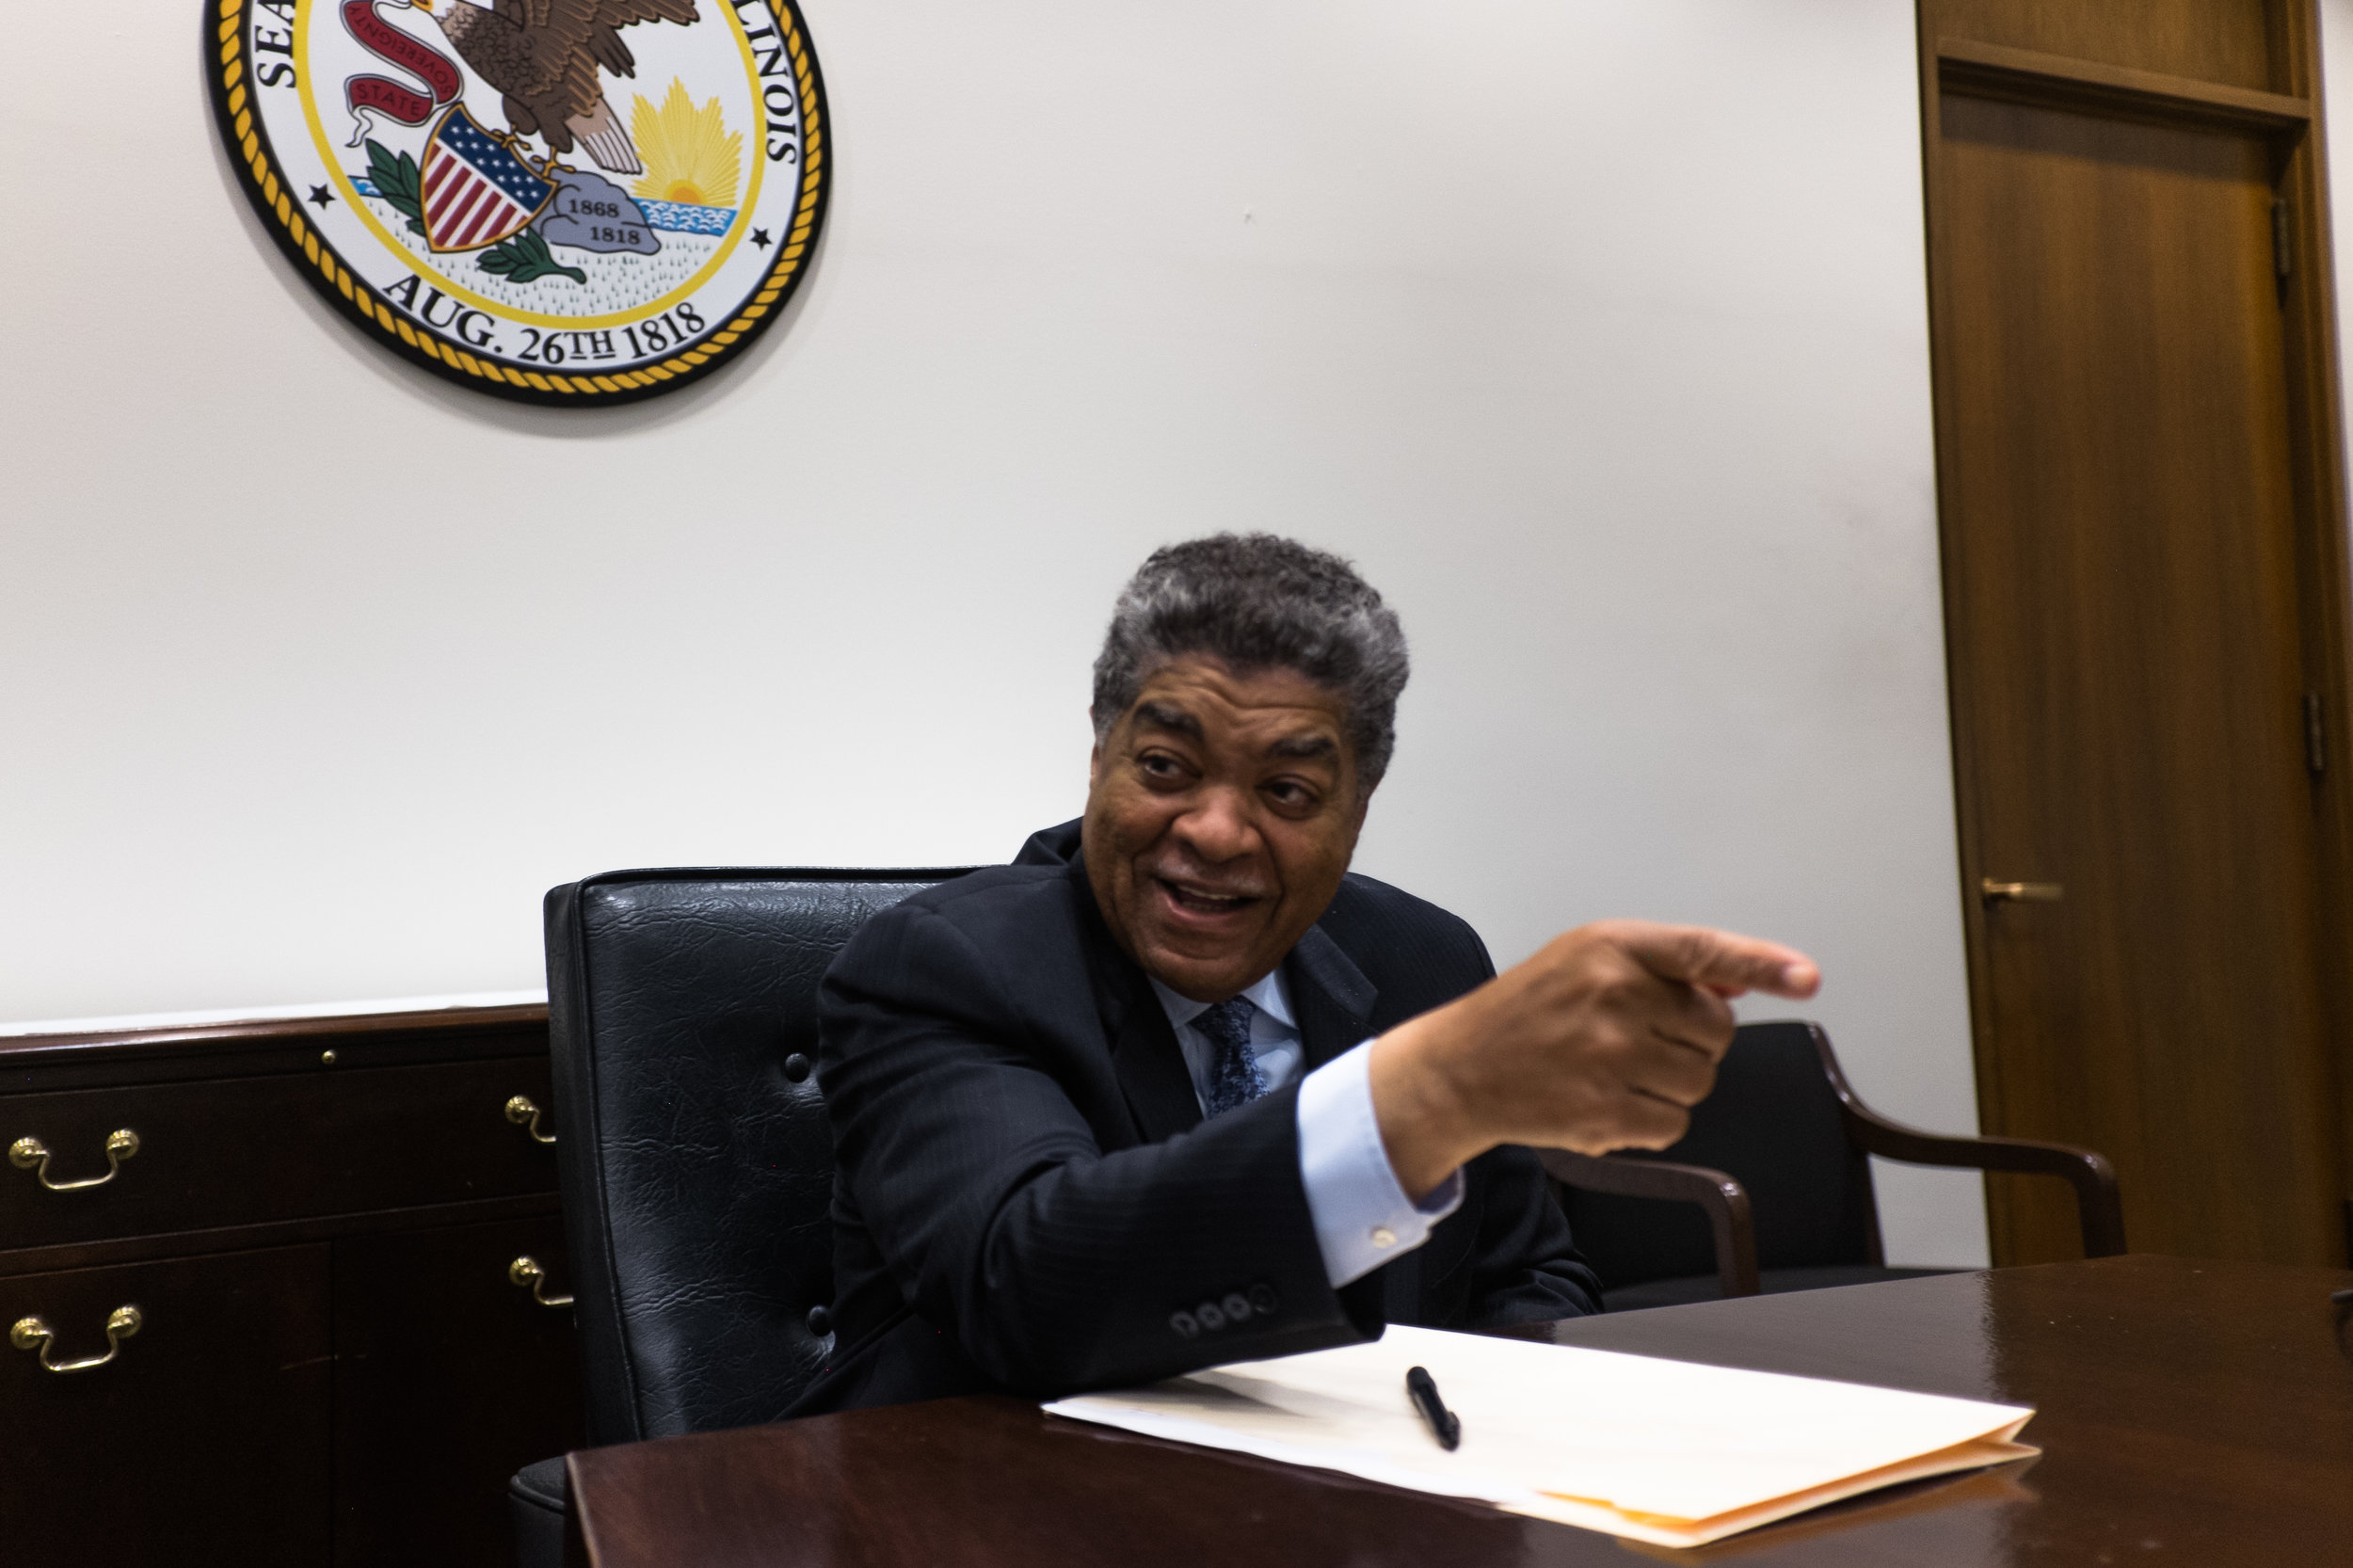 "Chief Judge of the Circuit Court of Cook County, Timothy Evans, explains his plans to bring Restorative Justice to other South Side communities. Accredited as one of the pioneers of the Restorative Justice Community Court, Evans explains the need for an alternative court, ""I have to admit that the system that the larger community has embraced in the past has not worked,"" he said. ""We've tired arresting these young people, prosecuting them, they have been convicted, incarcerated, but the recidivism rate does not go down. We need something new."" (Sebastian Hidalgo)"